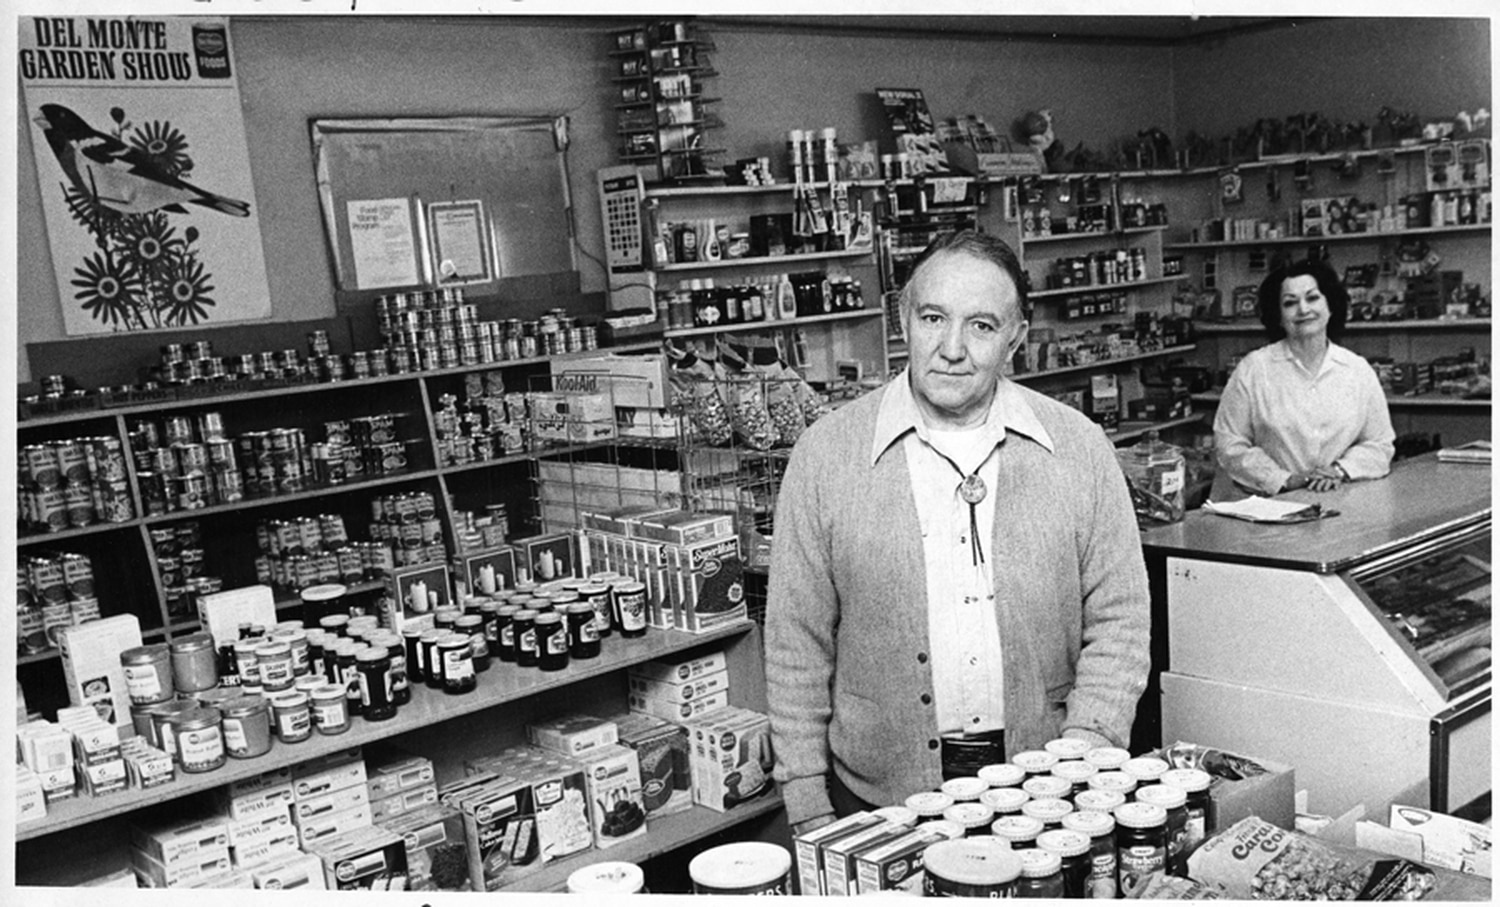 Proprietor Meliton Vigil Jr. in the Palace Grocery on East Palace Avenue, Santa Fe, New Mexico, circa 1980.